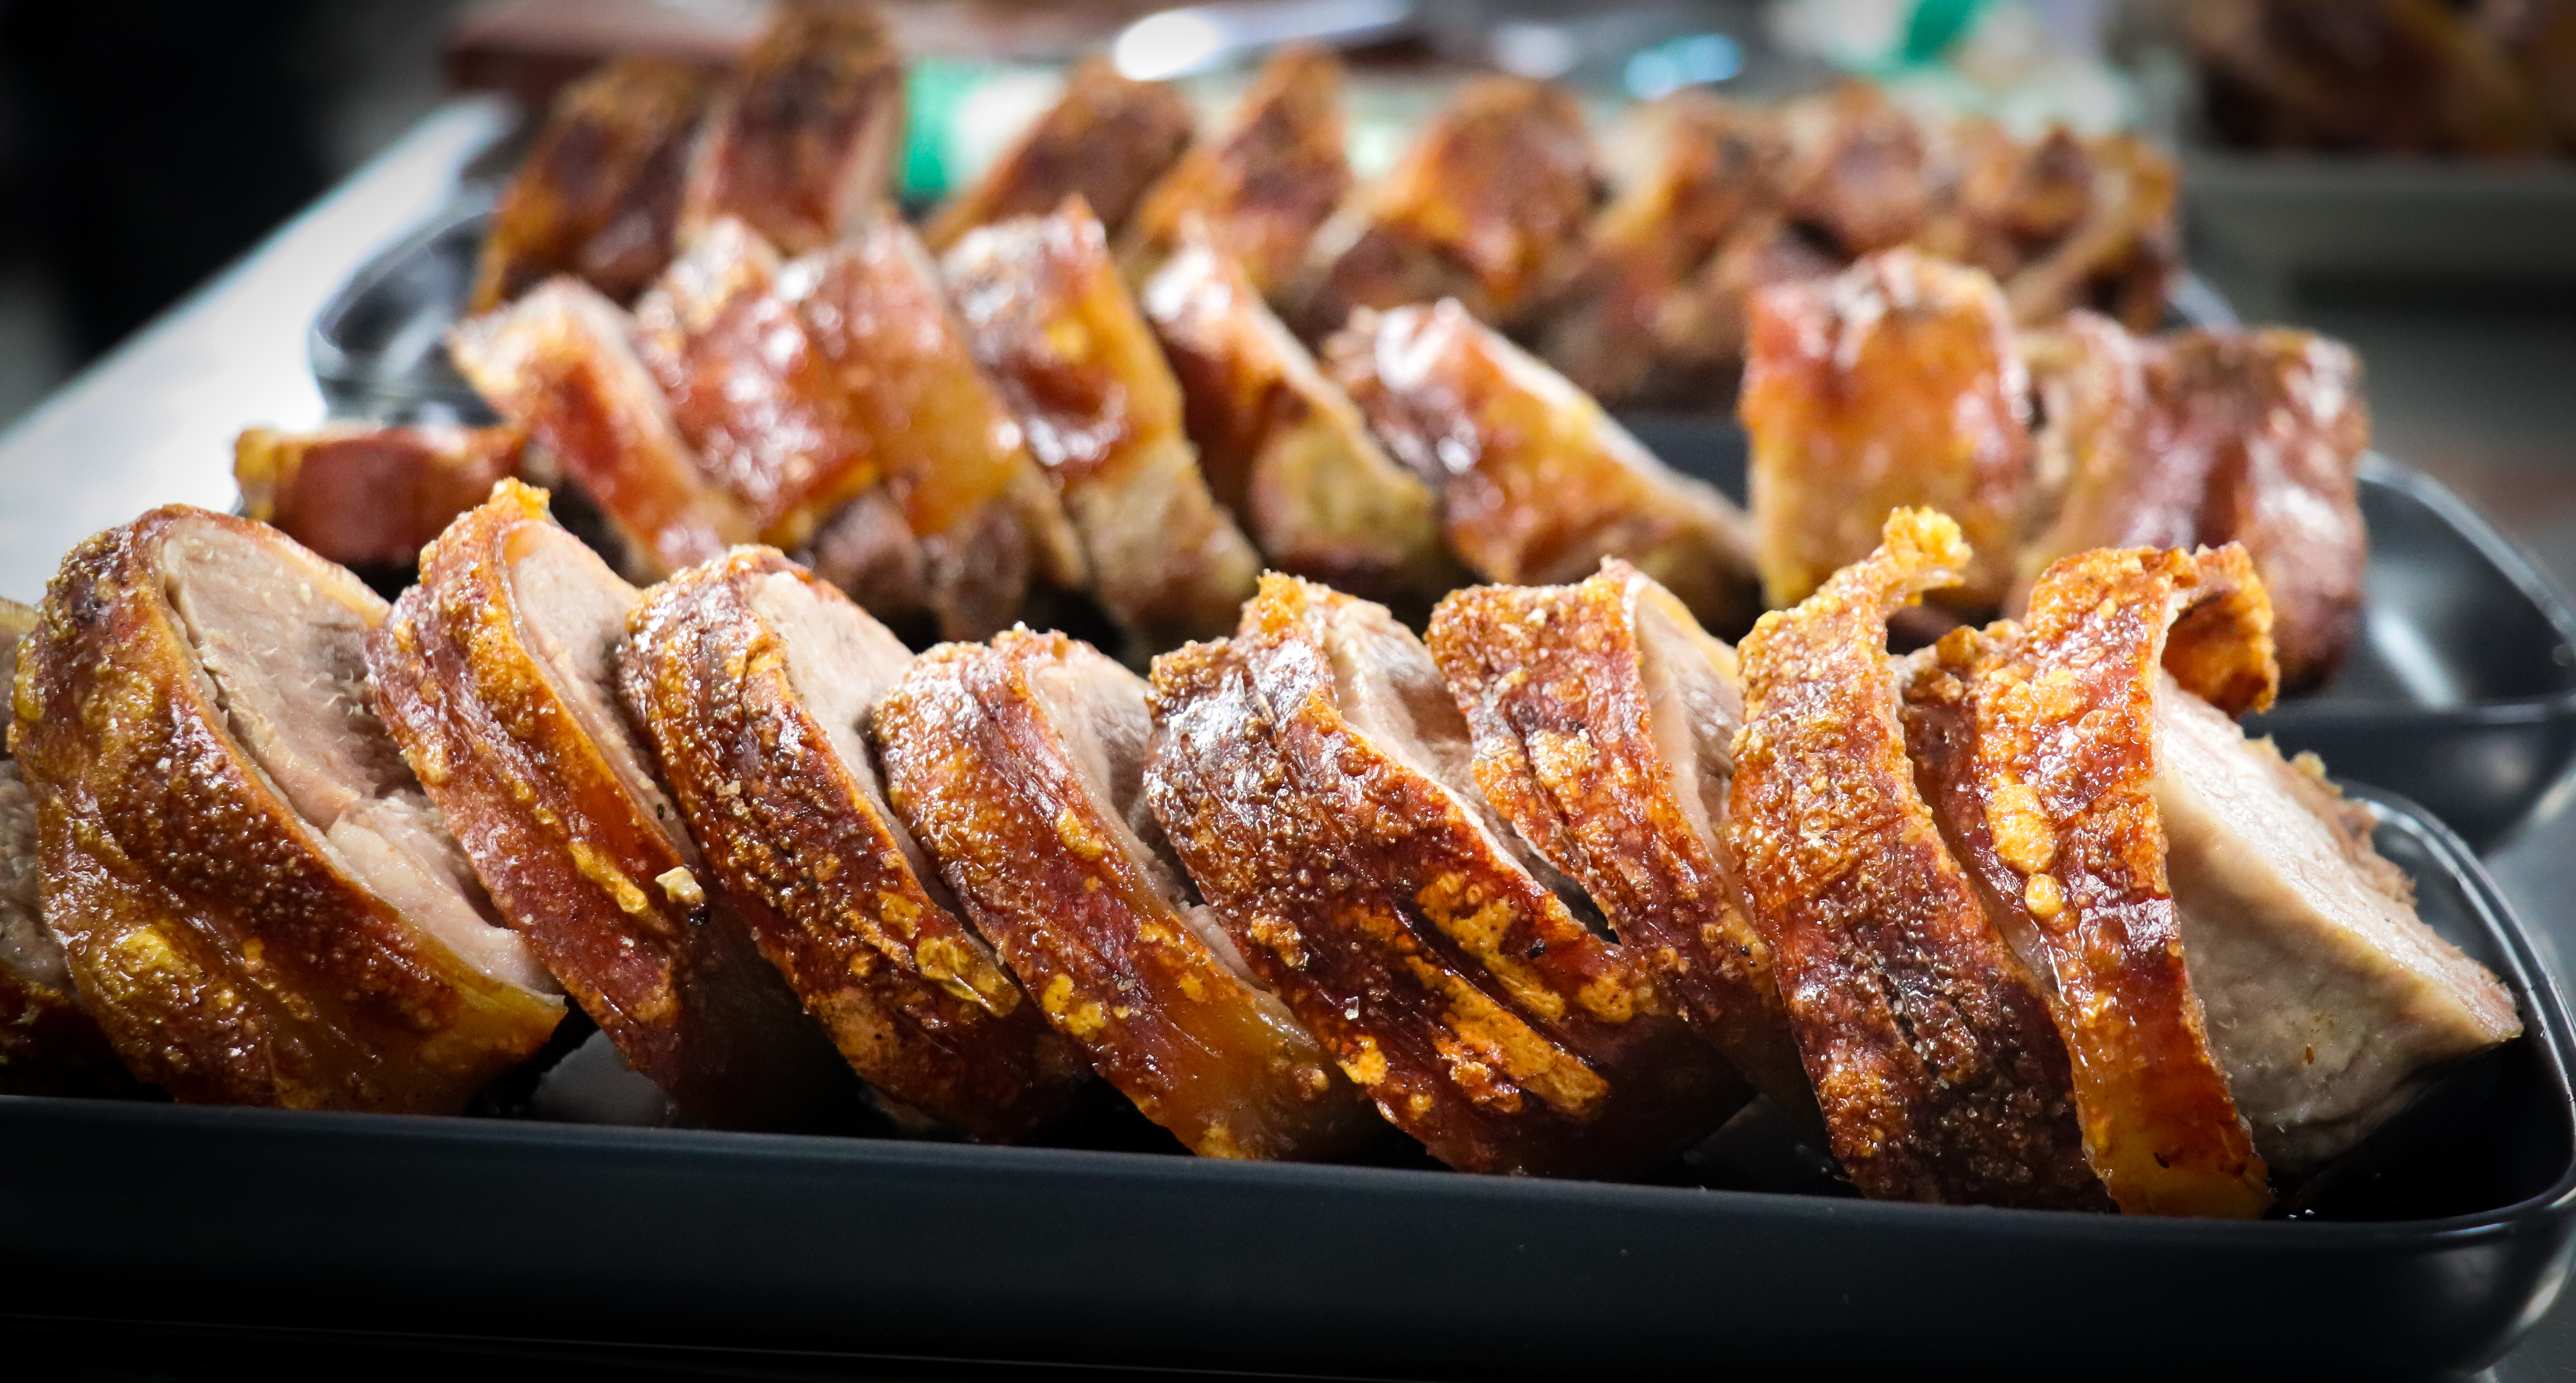 Plates of Roasted Pork with crackling